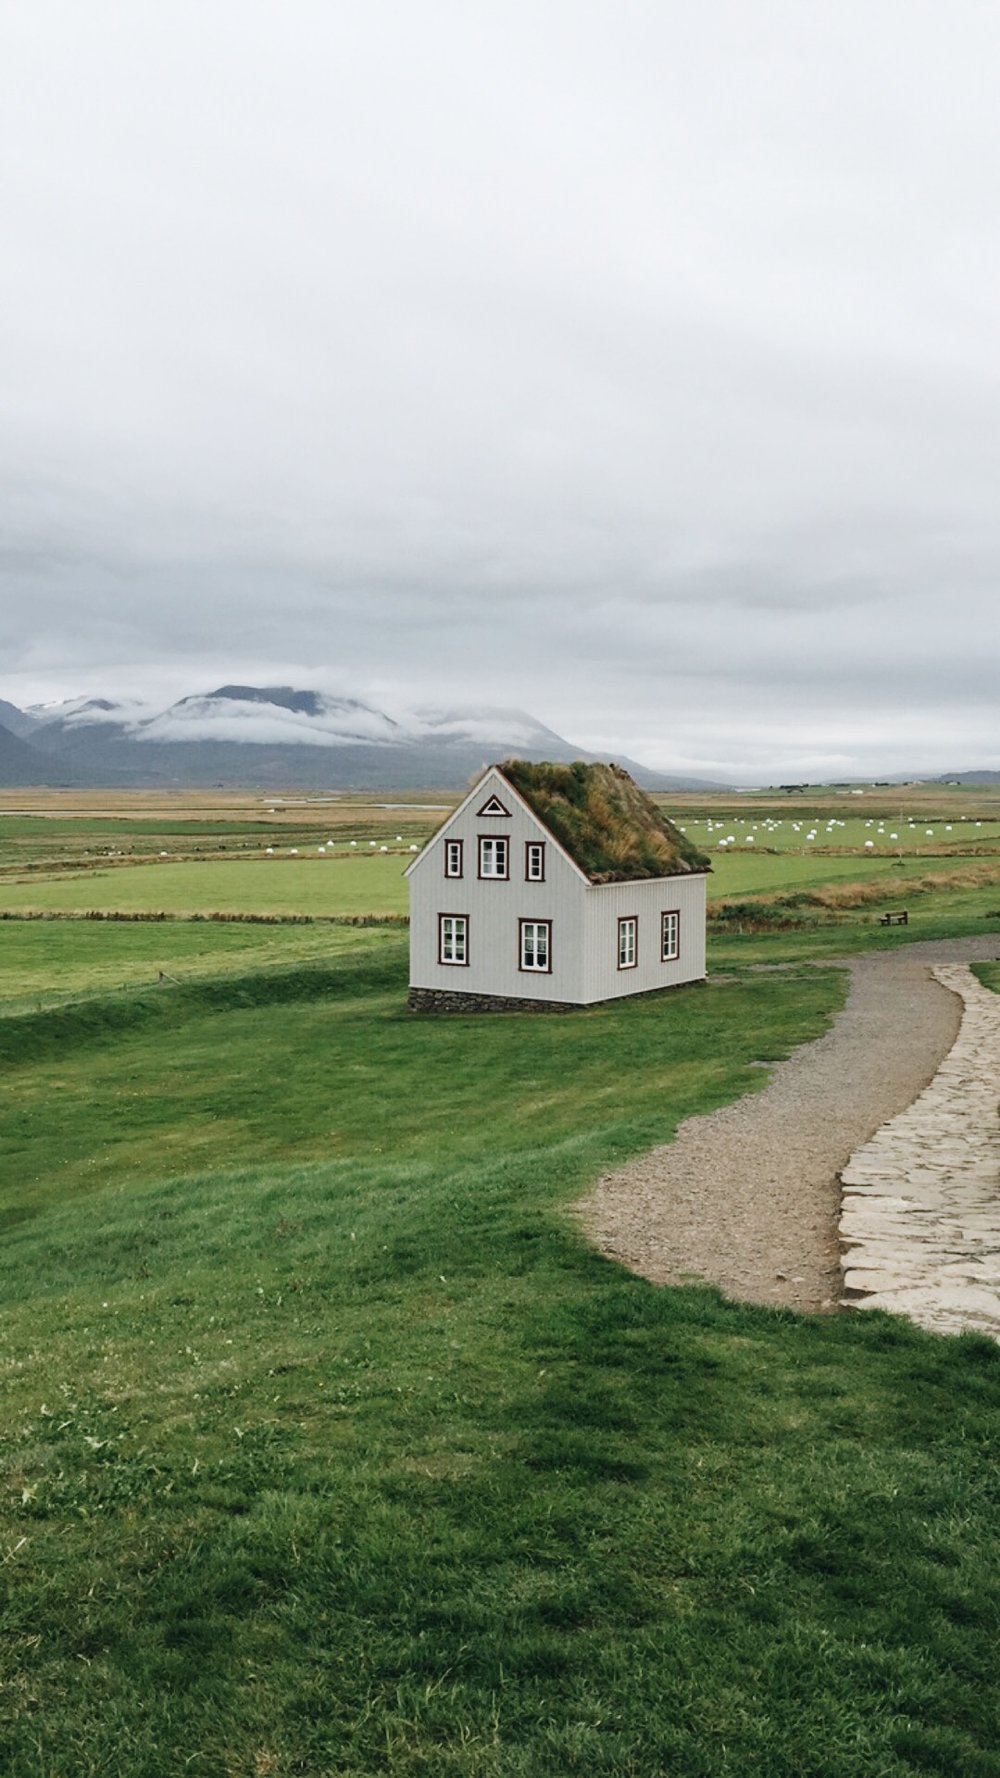 Copy of Turf house, West Iceland